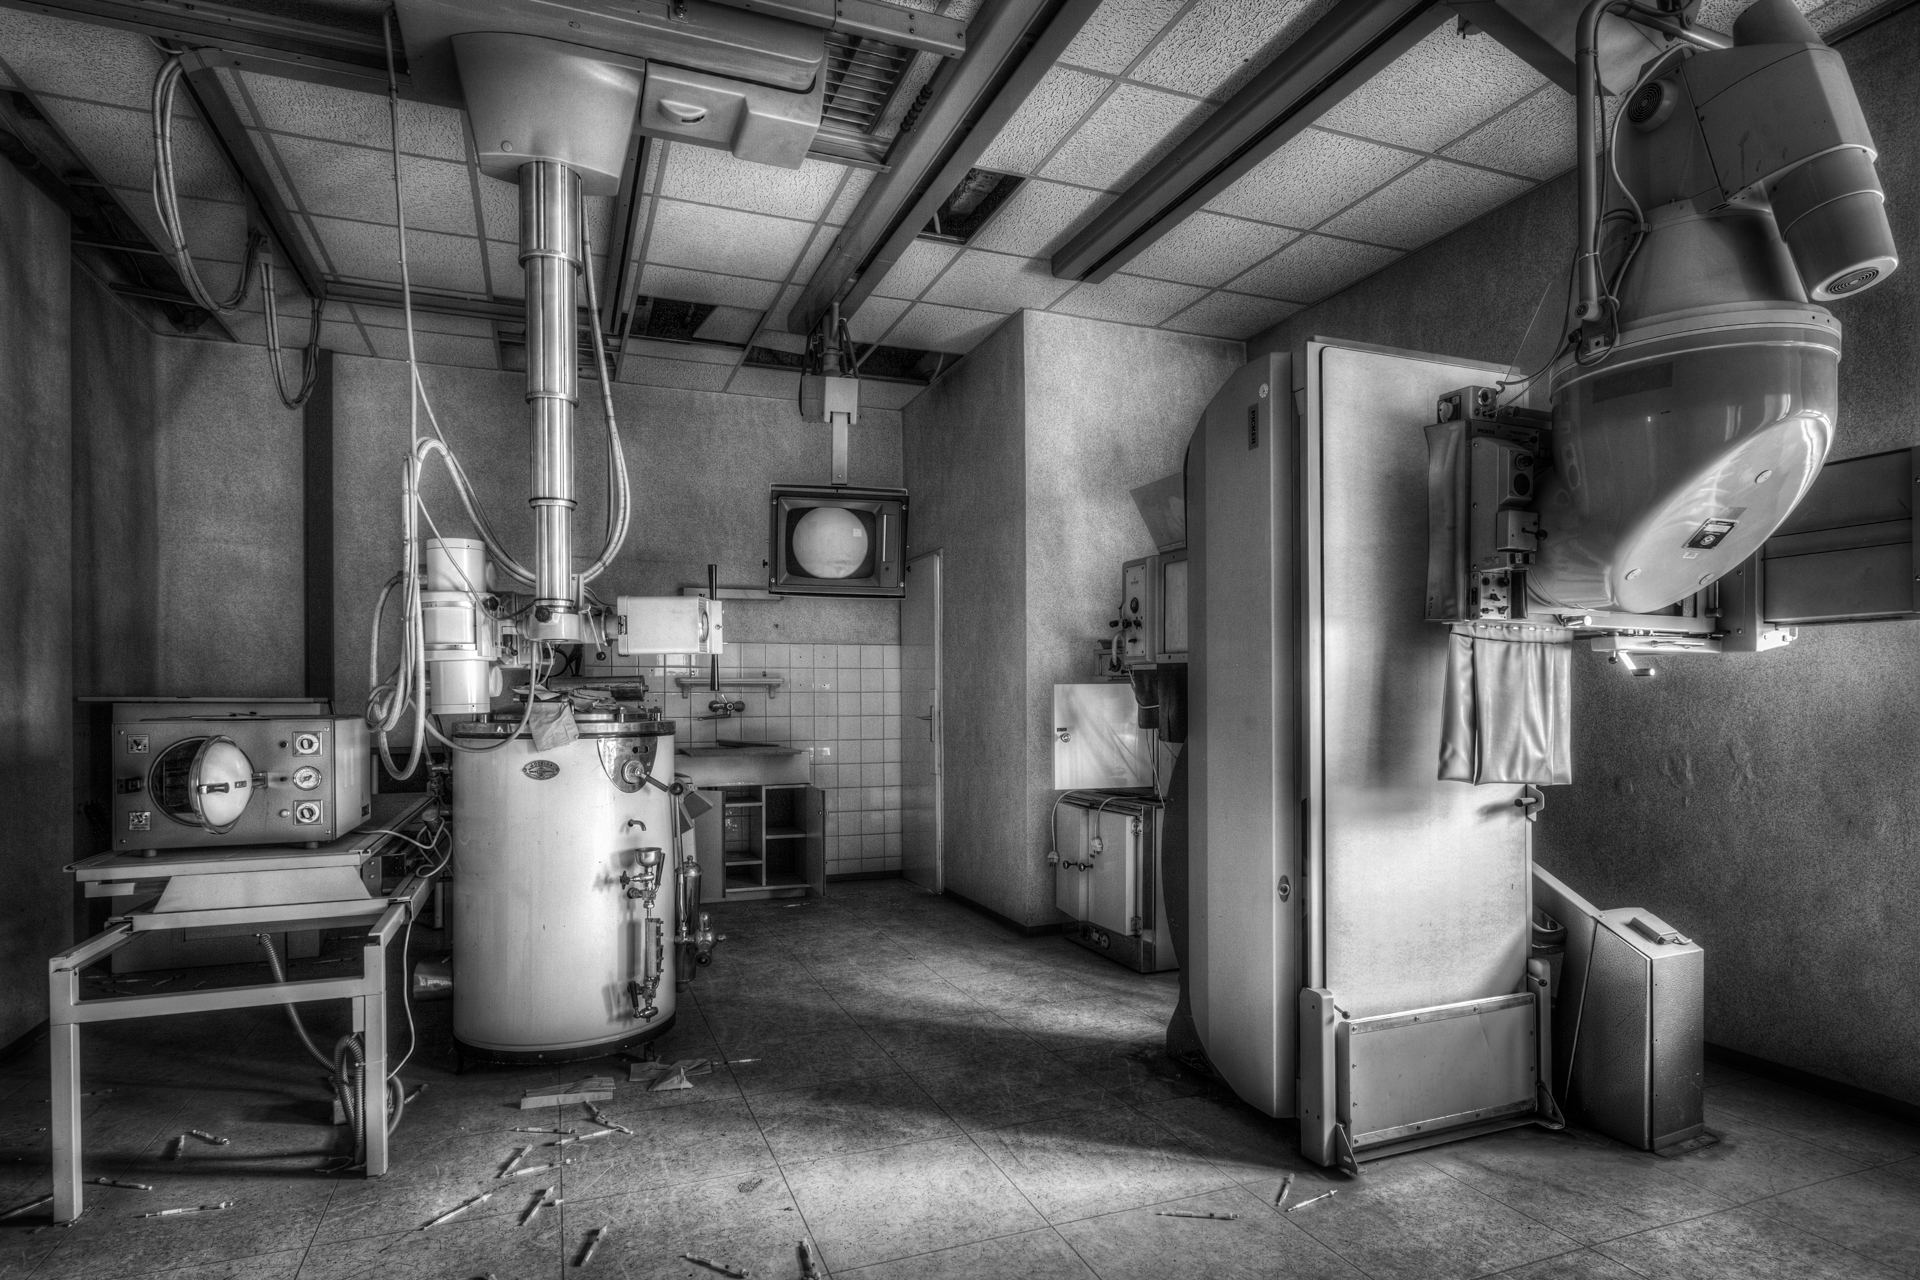 Urbex - Klinikum Panorama - Ray in Peace